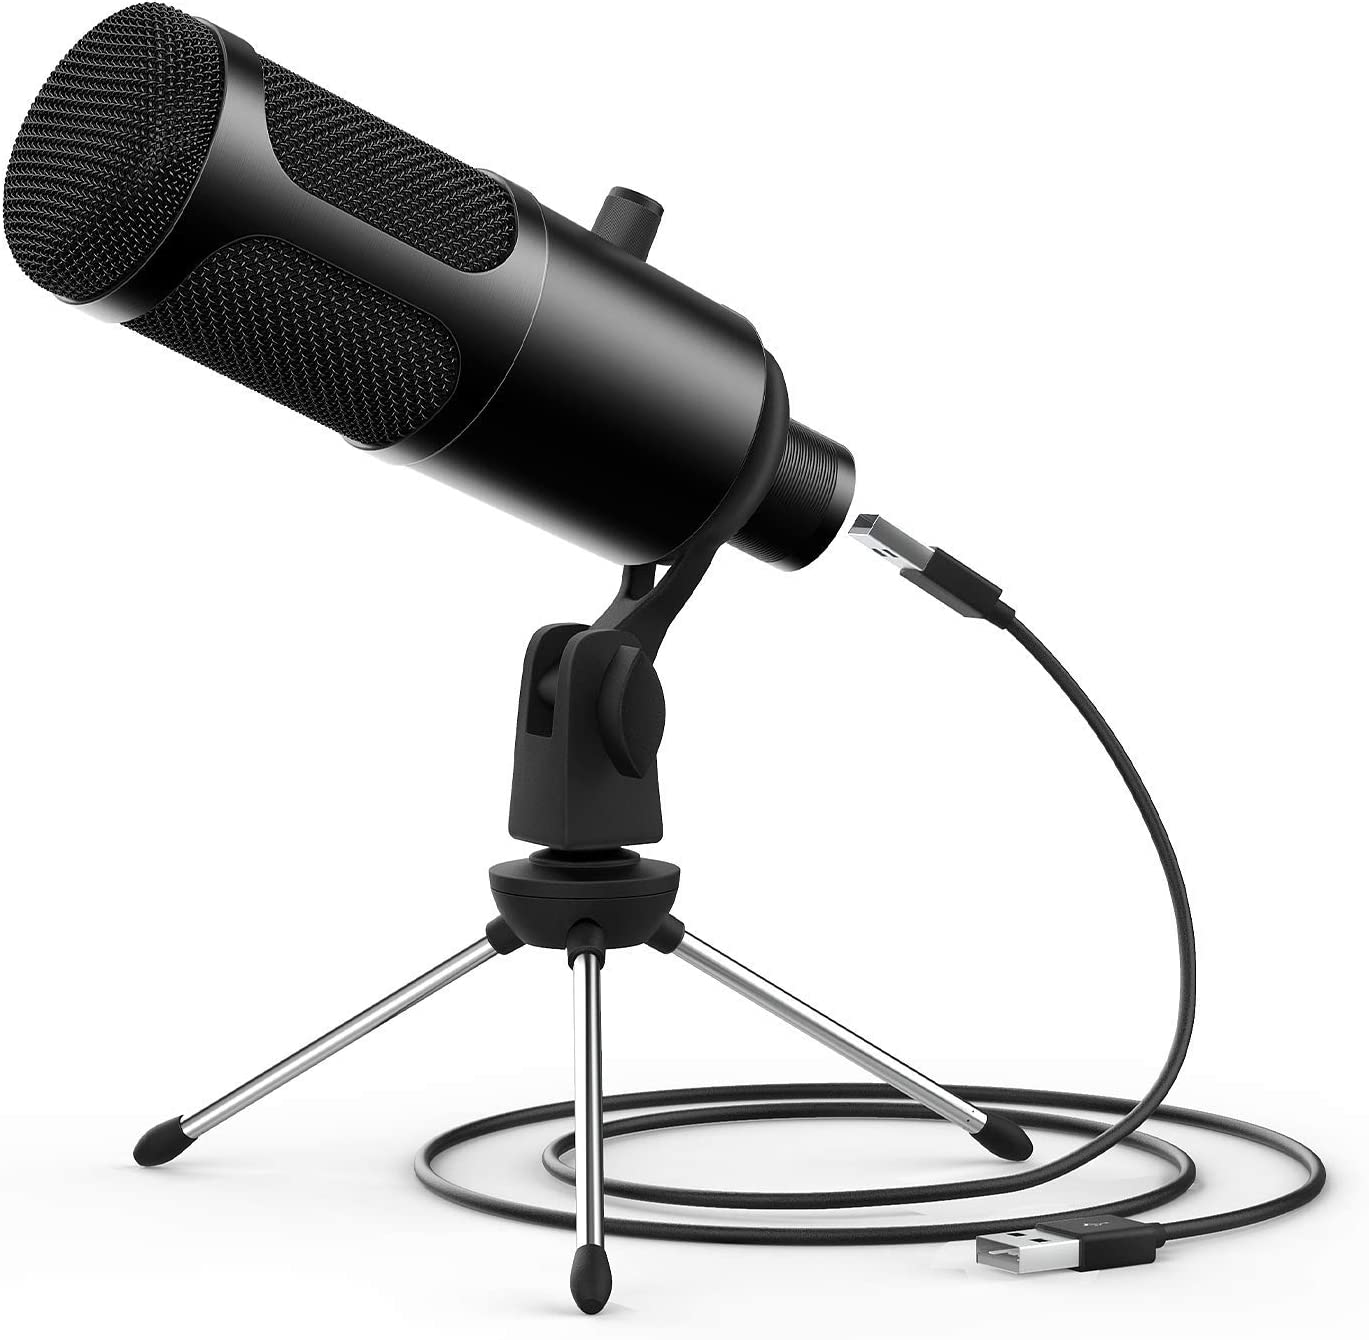 JEEMAK Professional Condenser Microphone Set with Adjustable Mic Arm Stand Shock Mount for Gaming Studio Podcast Recording YouTube Video Steaming USB Microphone Kit for PC Computer